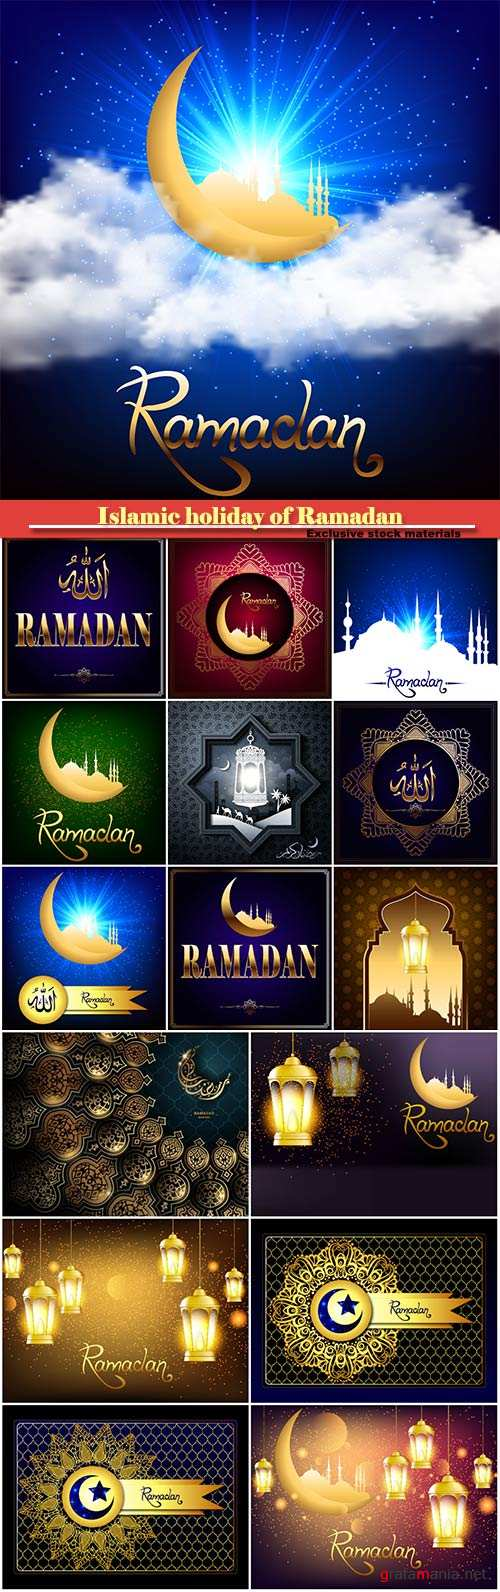 Vector background Islamic holiday of Ramadan